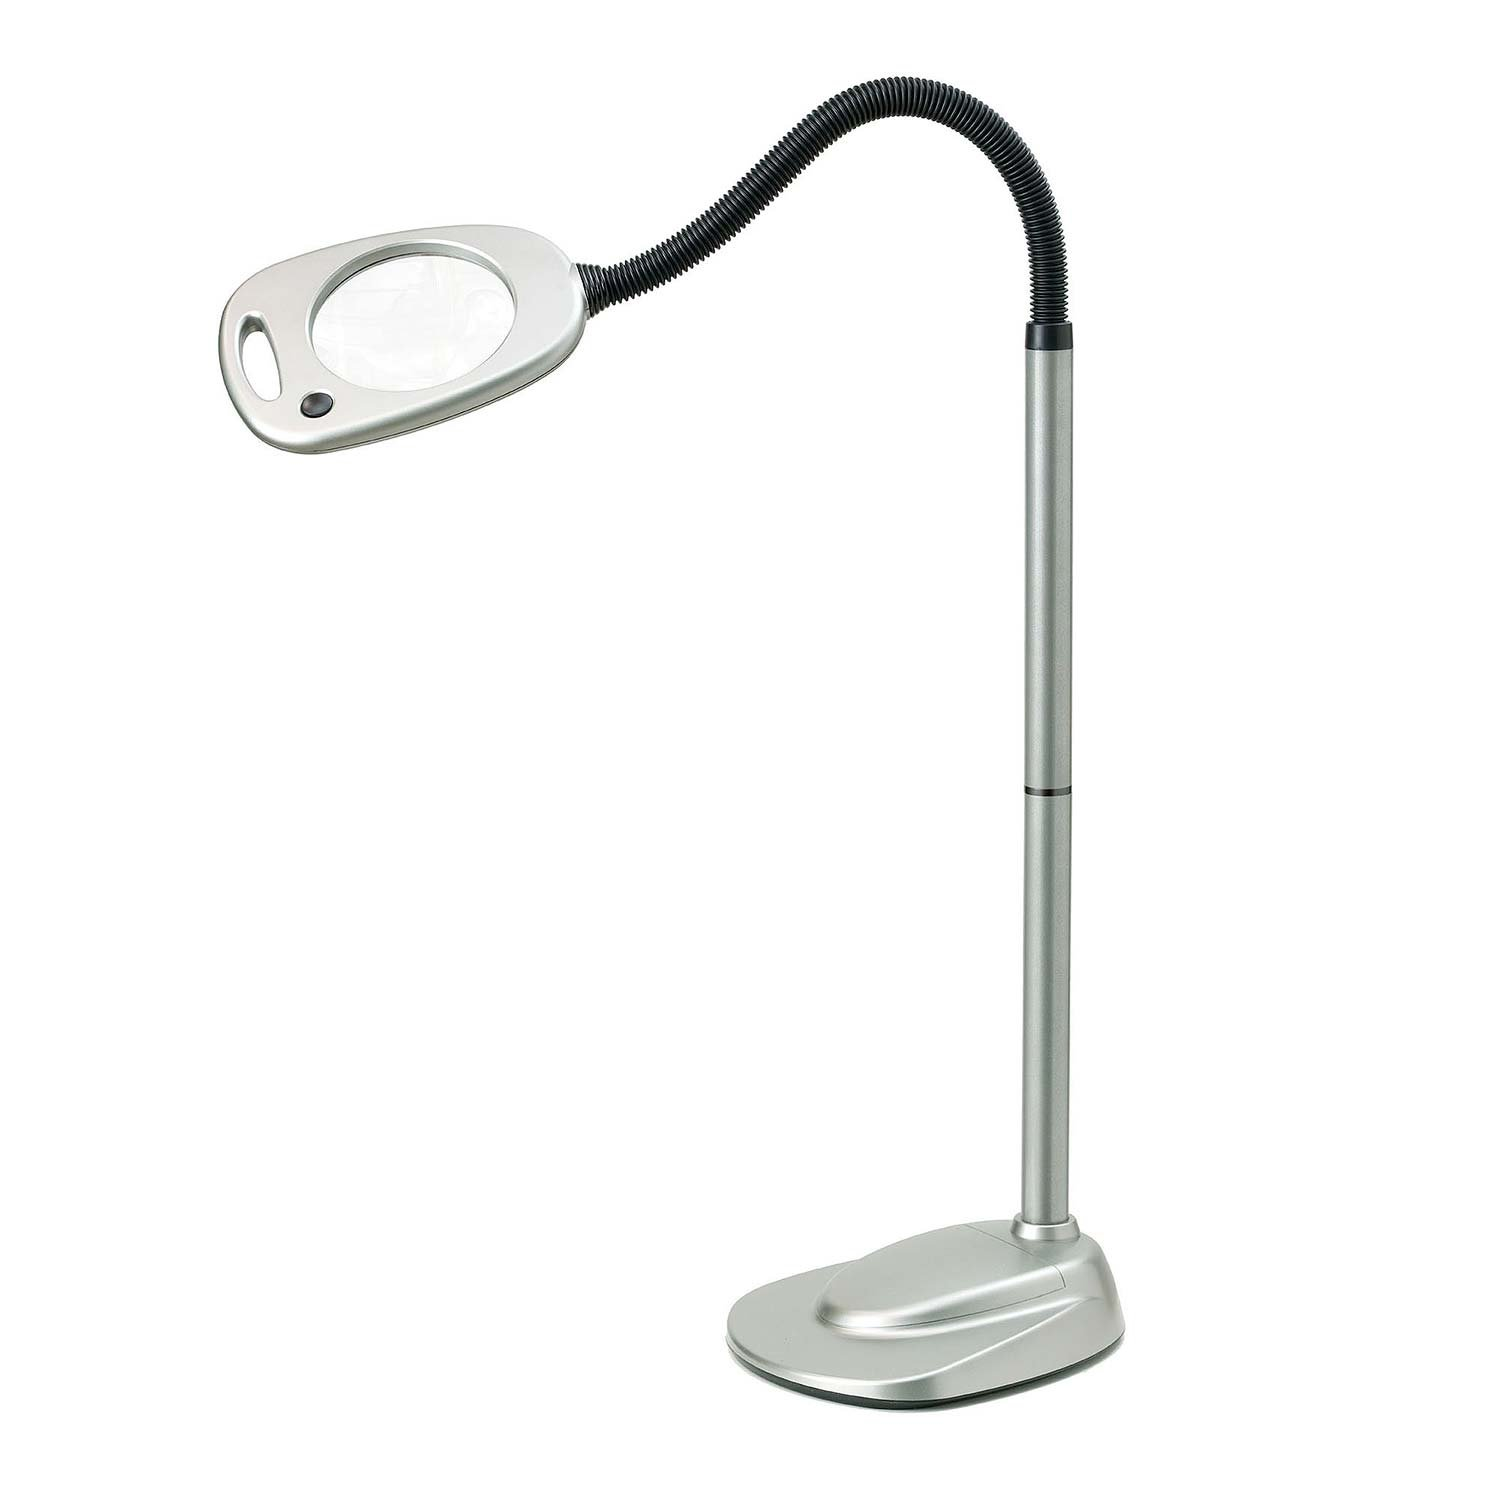 Light It! By Fulcrum 20072-401, 12 LED Wireless Magnifying Floor Lamp with Adaptor, 53 Inch, Silver